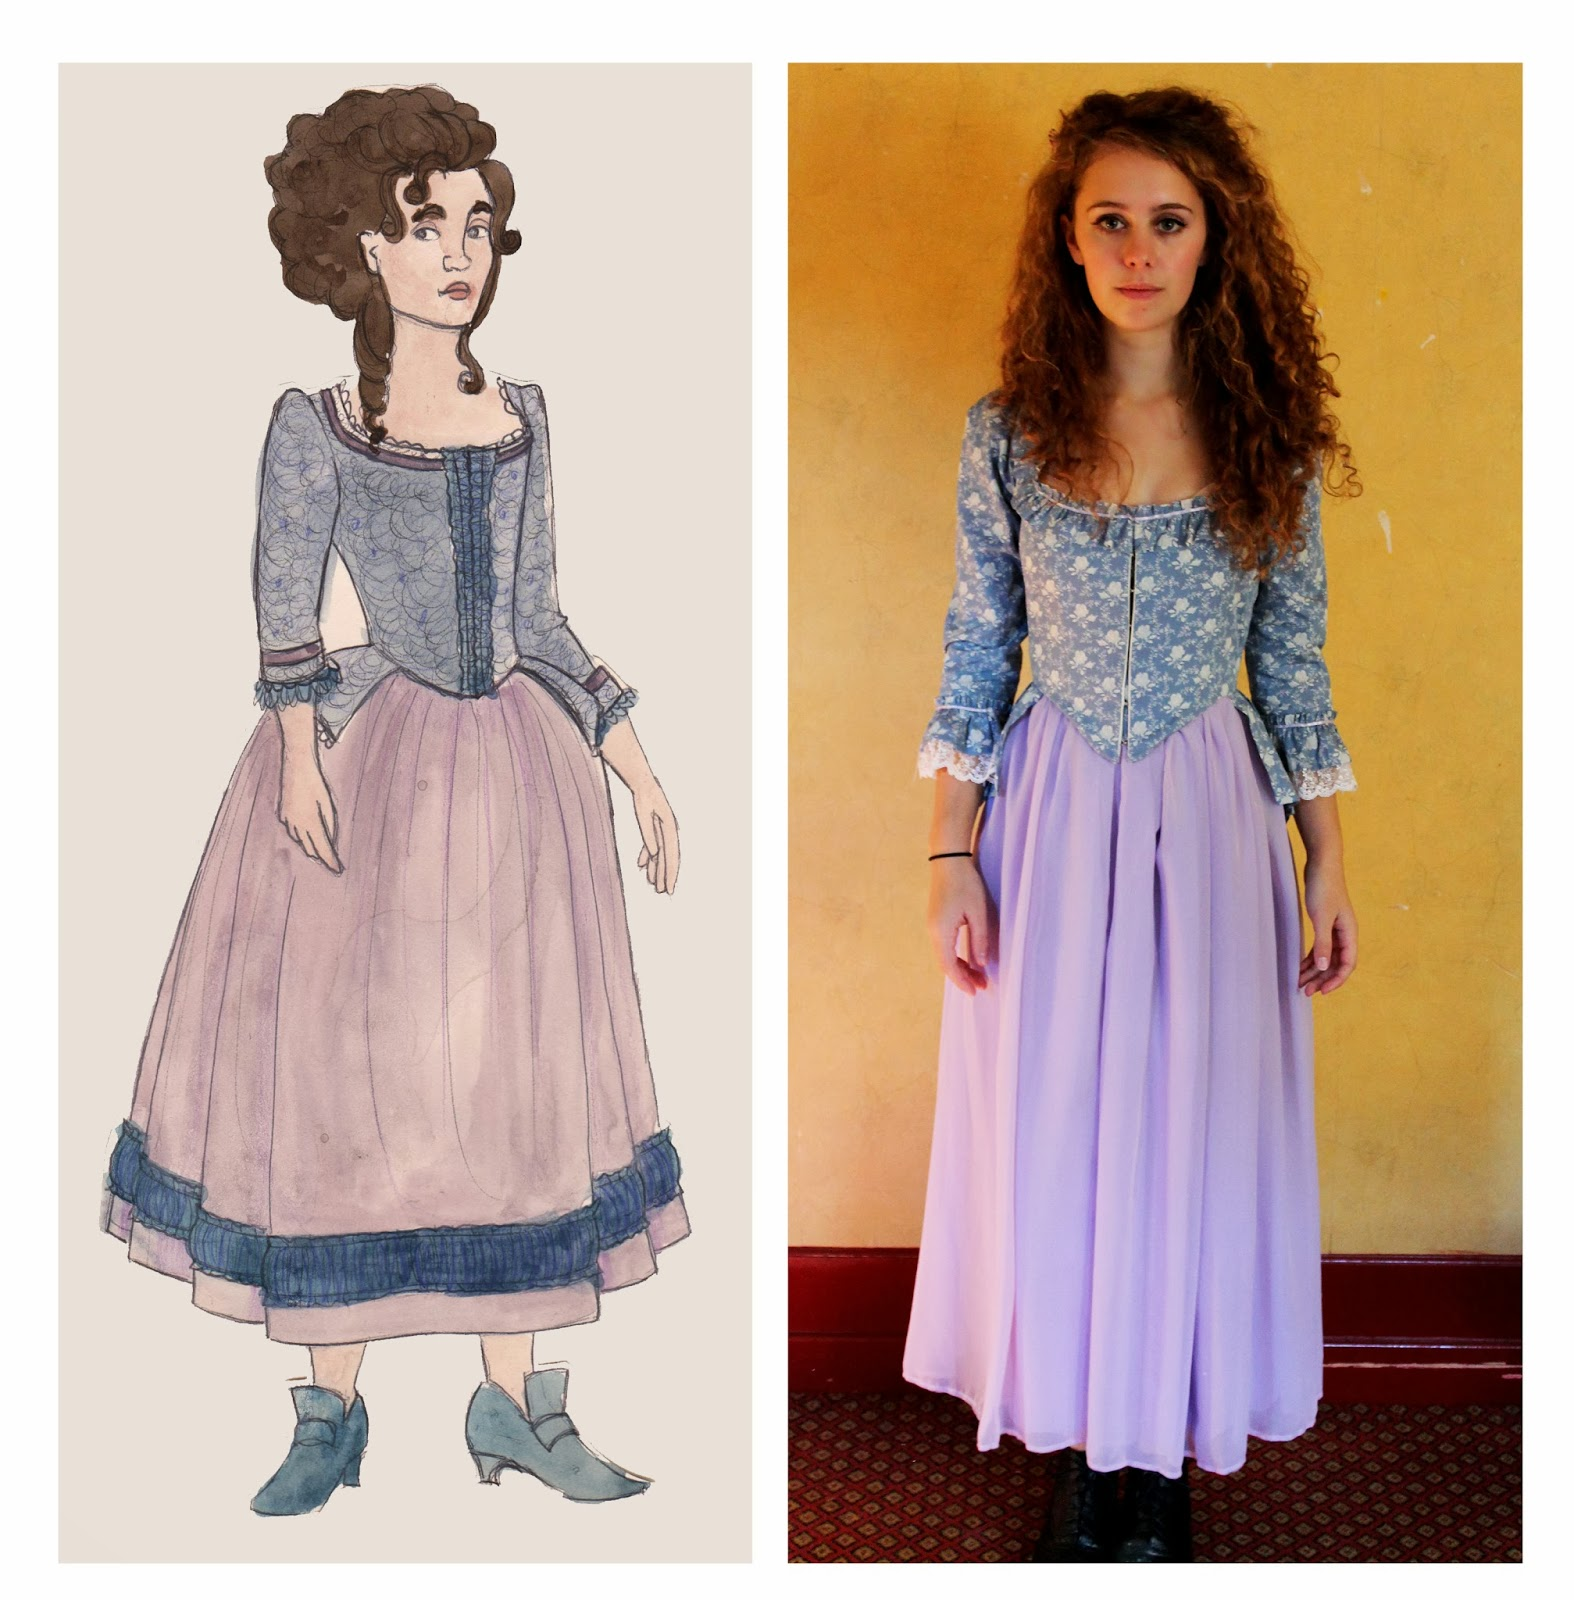 rachael fraser wuthering heights cathy s dresses the fabric for the bodice is a light blue a floral rose pattern in cream it has a gathered flounce around the neckline and the sleeve as well as some